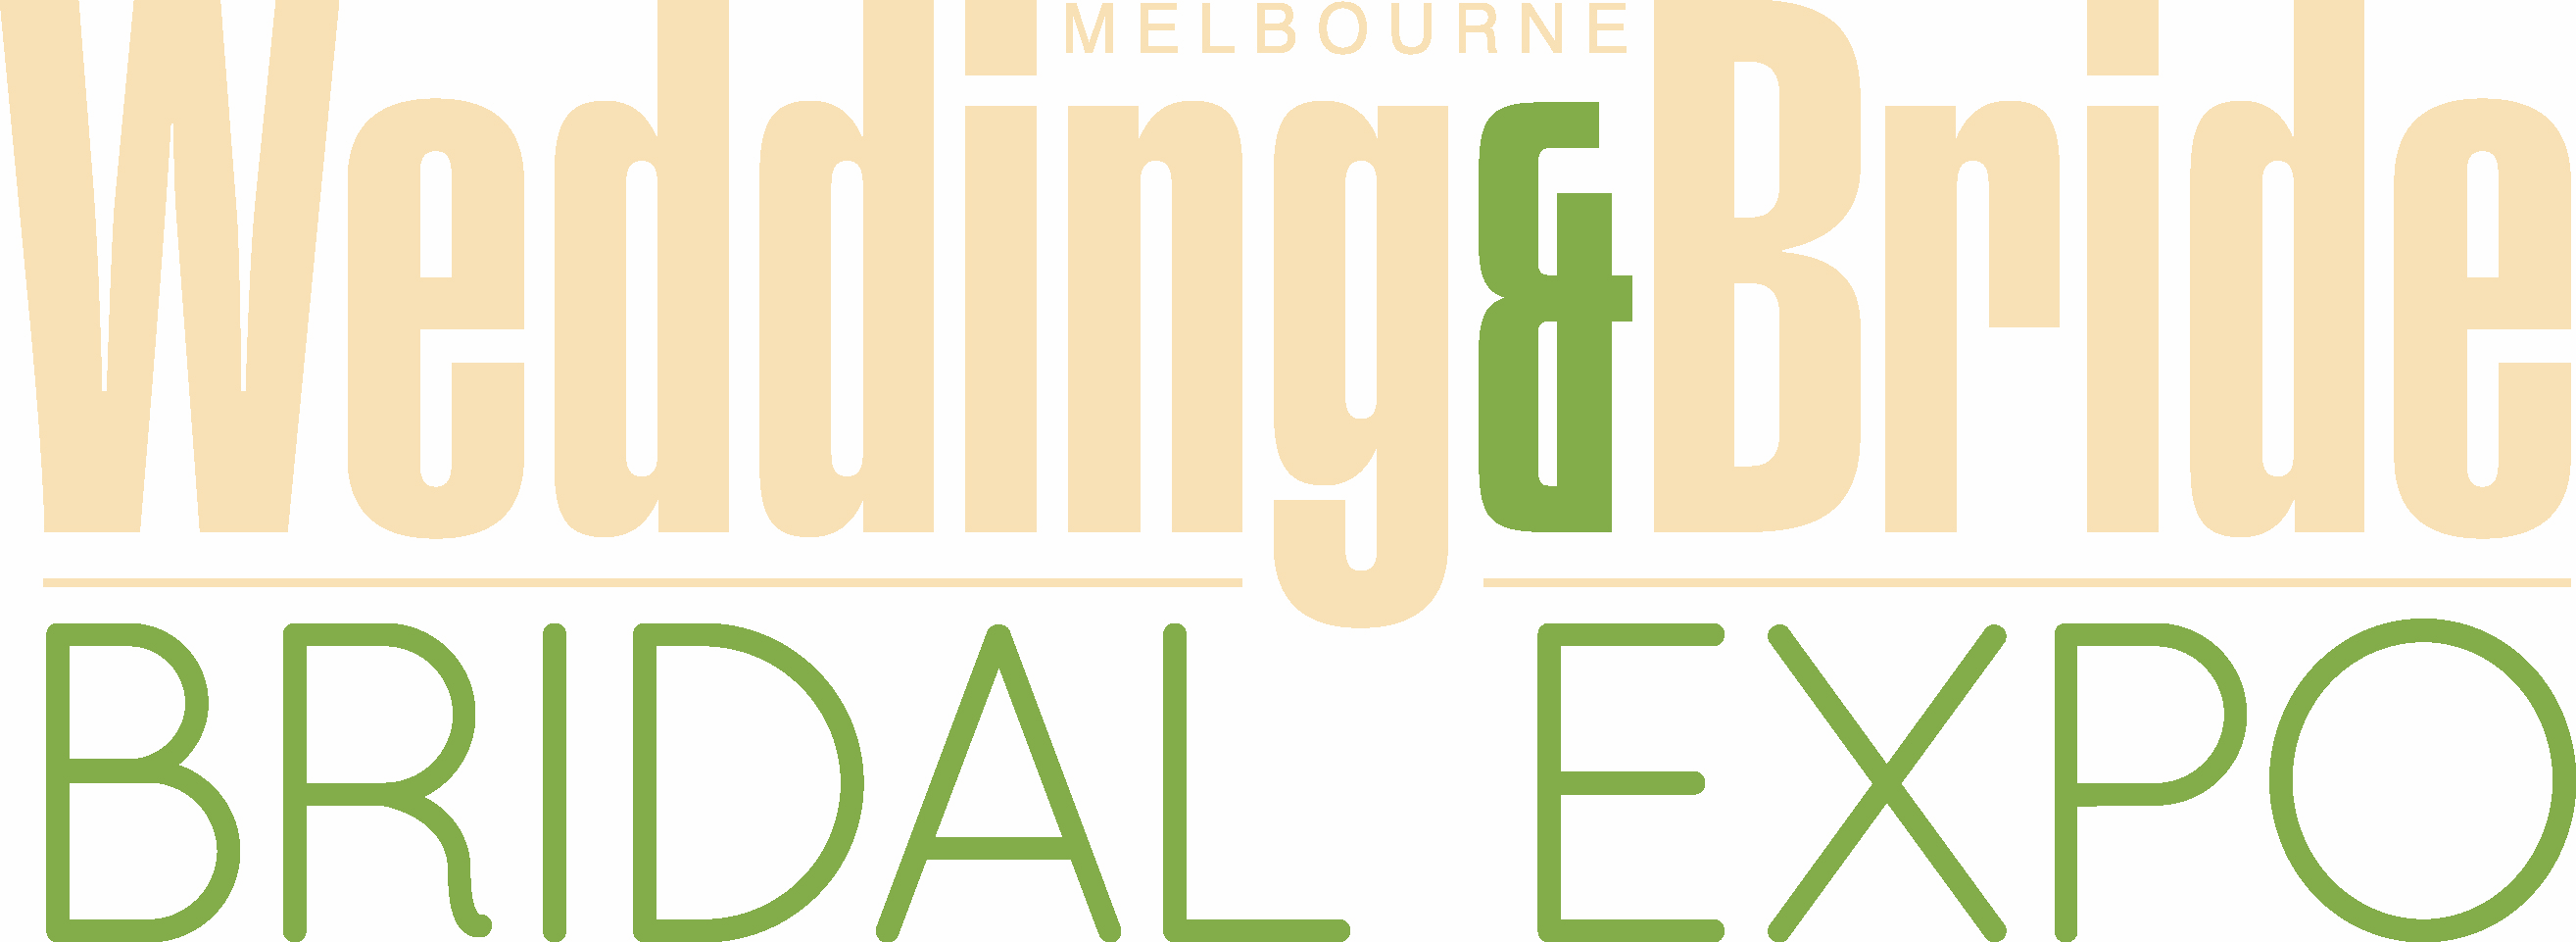 Melbourne Wedding And Bride Bridal Expo